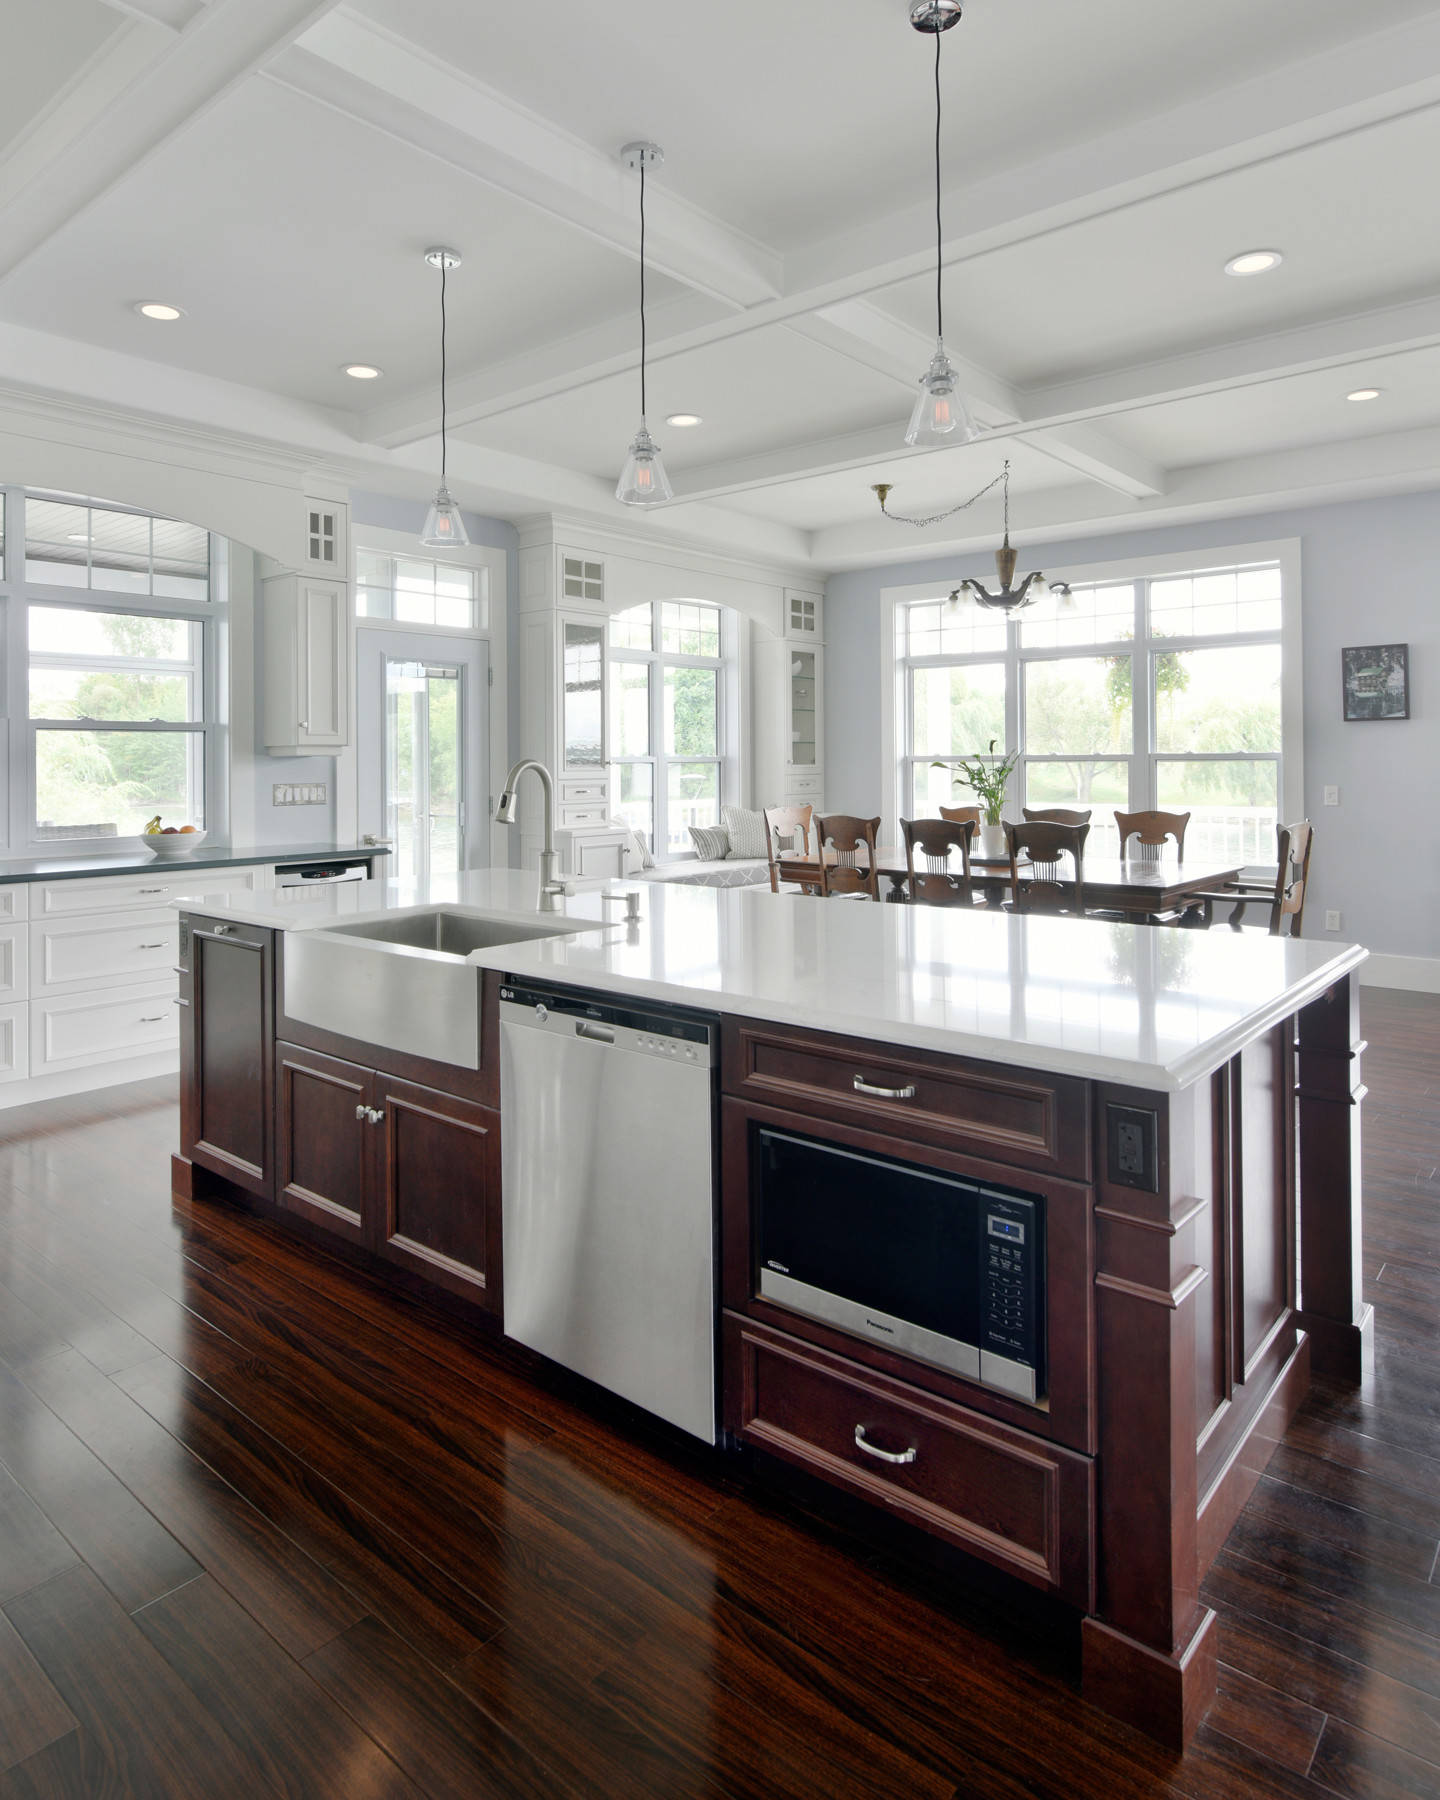 A kitchen island with cabinet legs